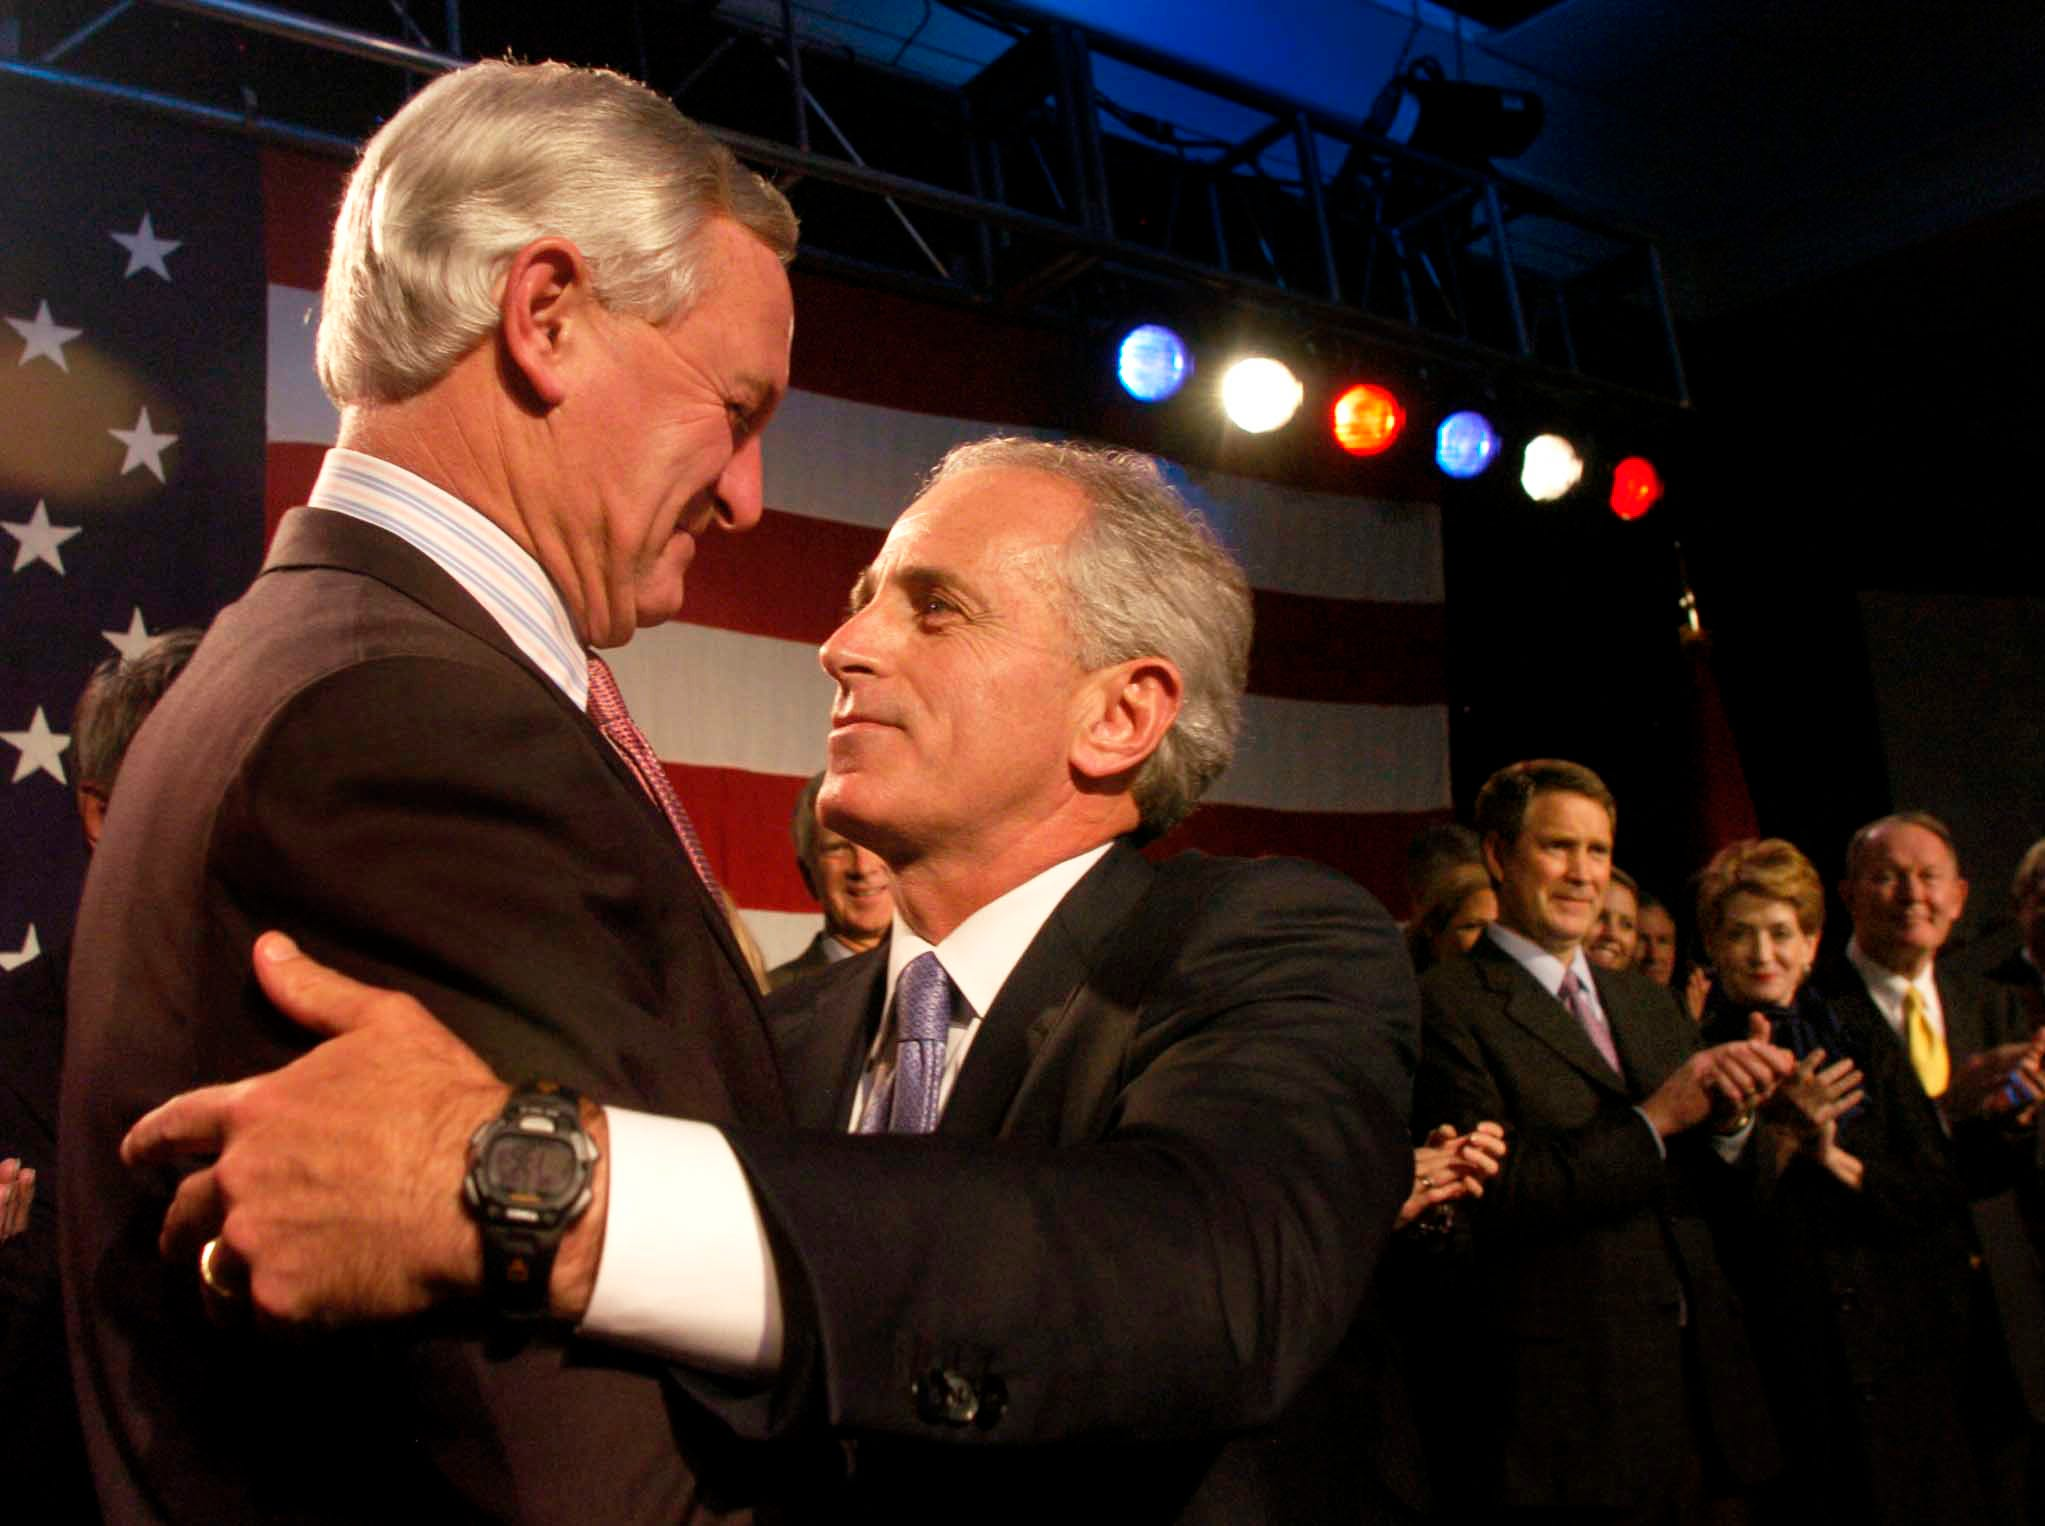 Senator-elect Bob Corker, right,  greets friend and supporter Jimmy Haslam during his victory speech in November 2006. Corker and Haslam were roommates in college and it was Corker who later encouraged Bill Haslam to run for mayor of Knoxville.